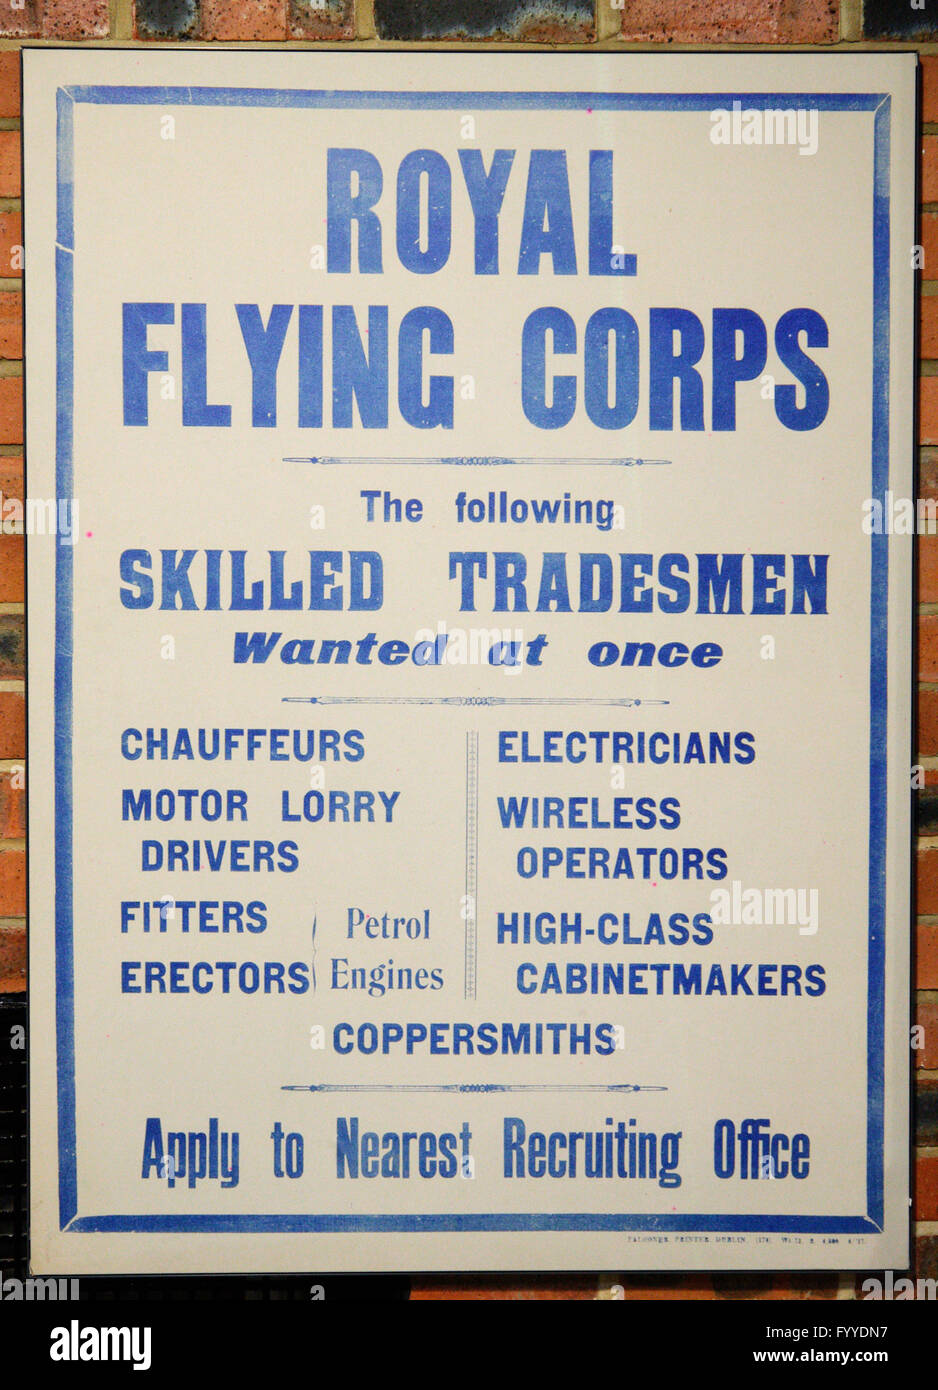 First World War poster recruiting skilled tradesmen for the Royal Flying Corps - Stock Image